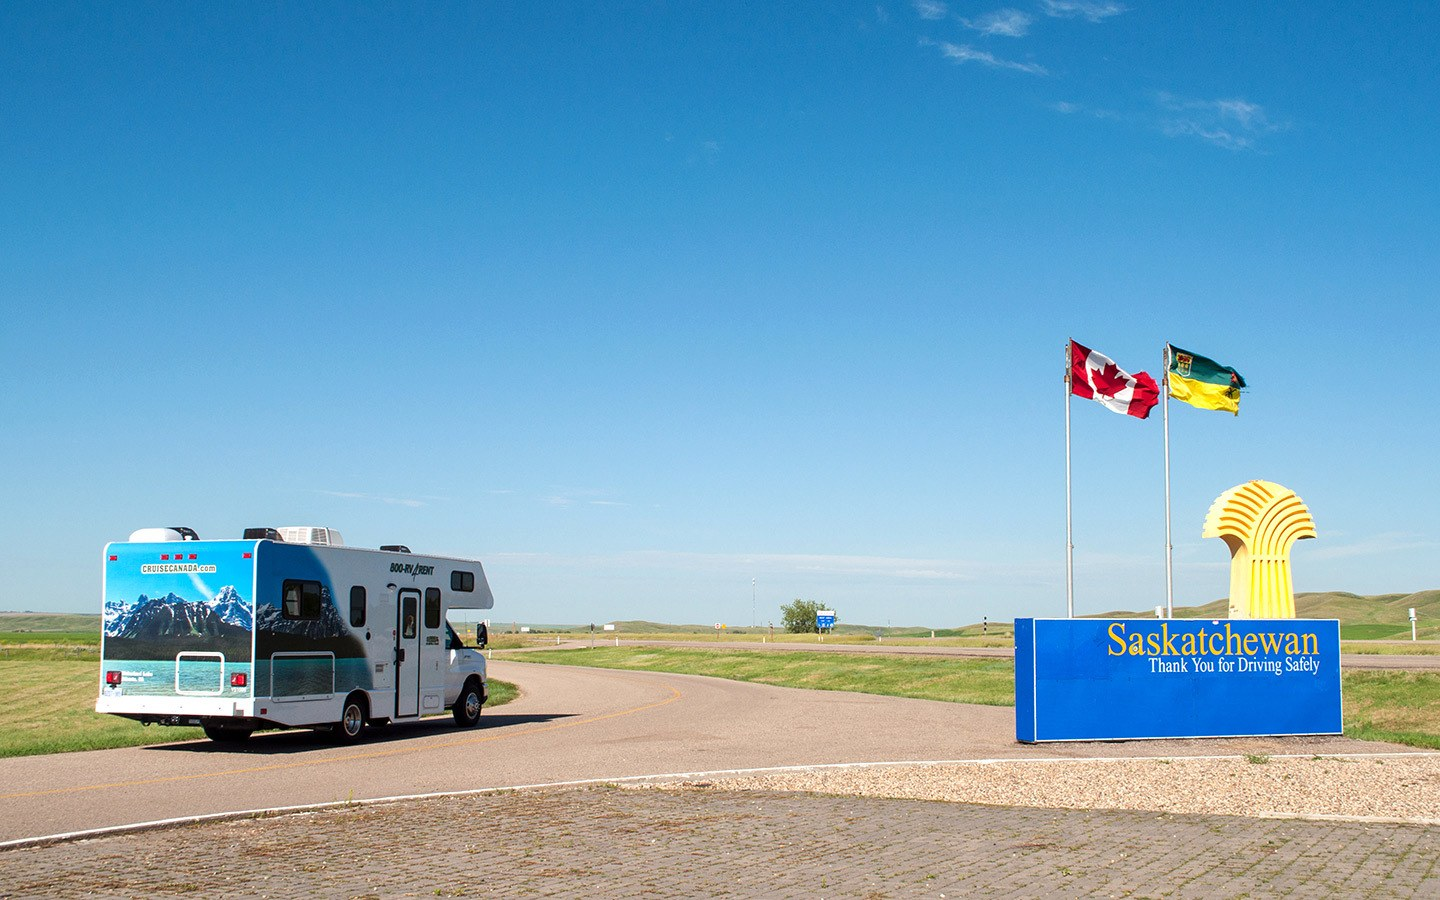 RV on Highway 1 in Canada crossing over into Saskatchewan on a Calgary to Toronto road trip